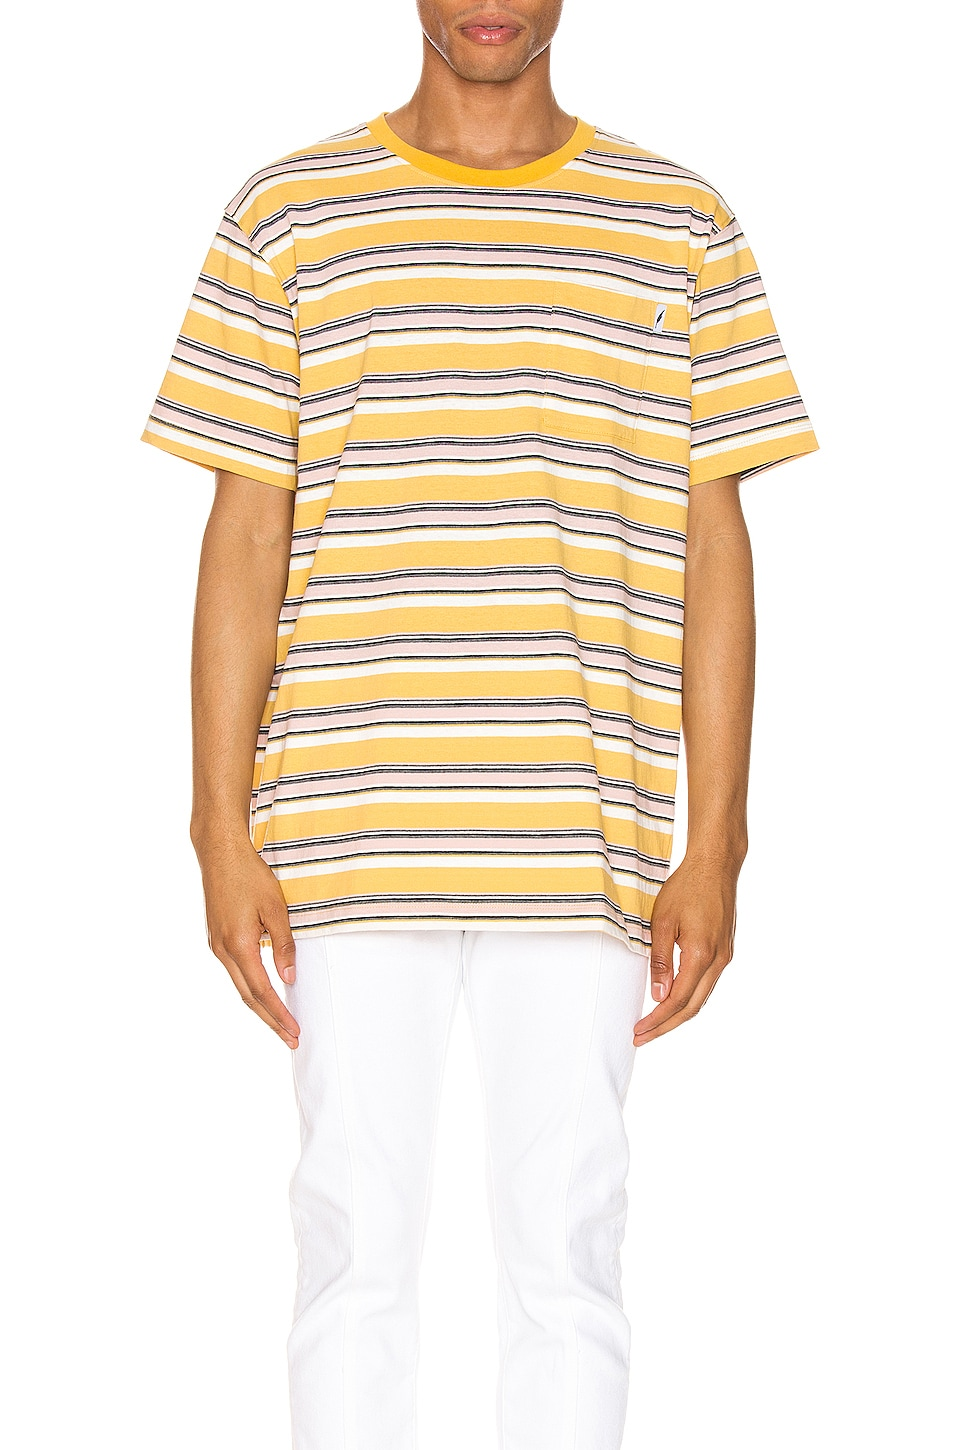 Publish Aguie Tee in Yellow